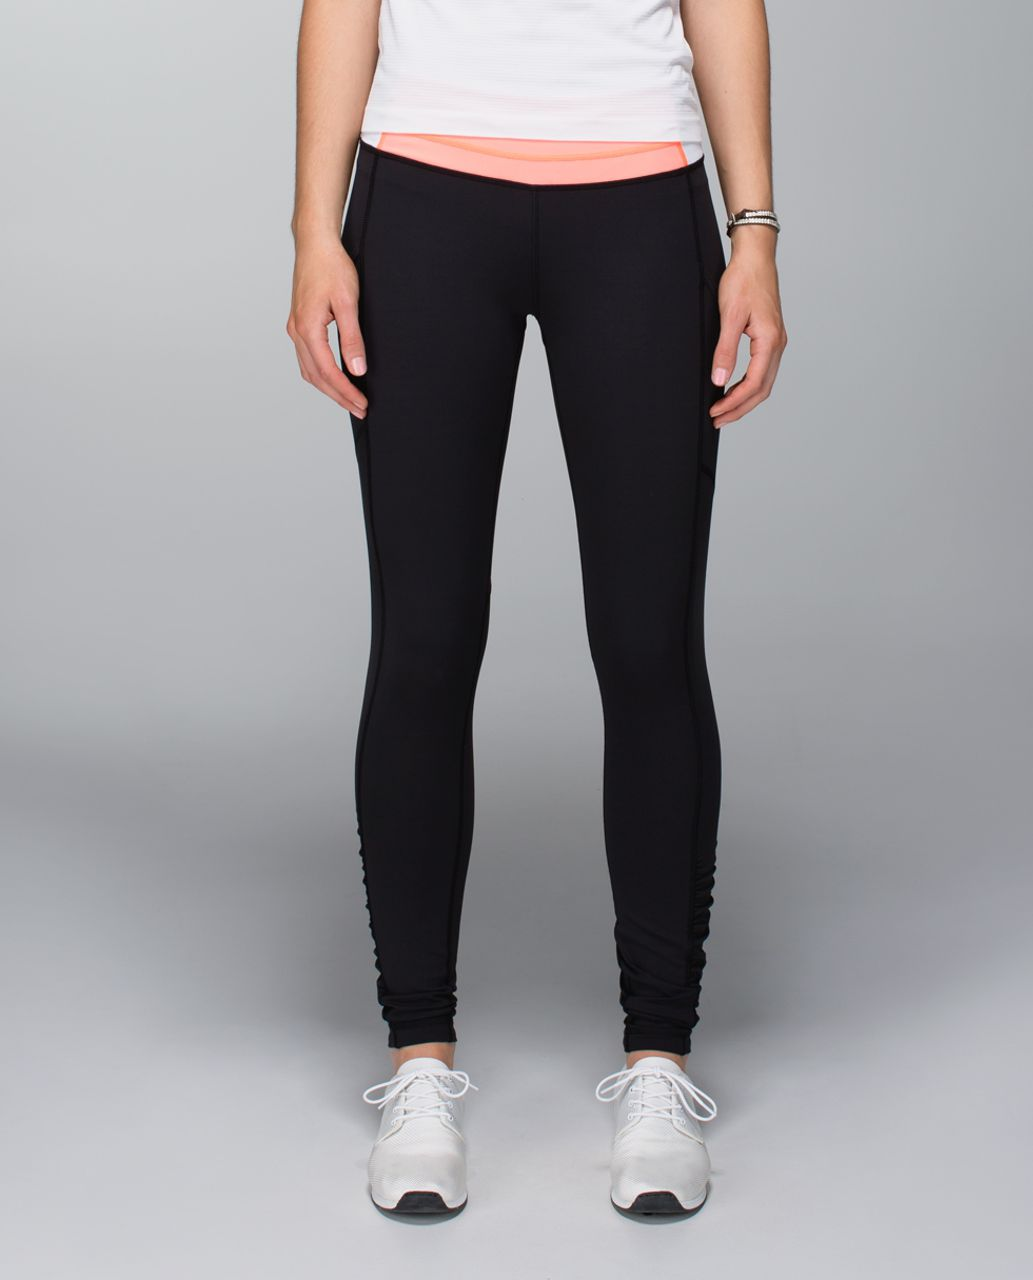 Lululemon Speed Tight *Full-On Luxtreme - Black / Quilt Spring 14-30